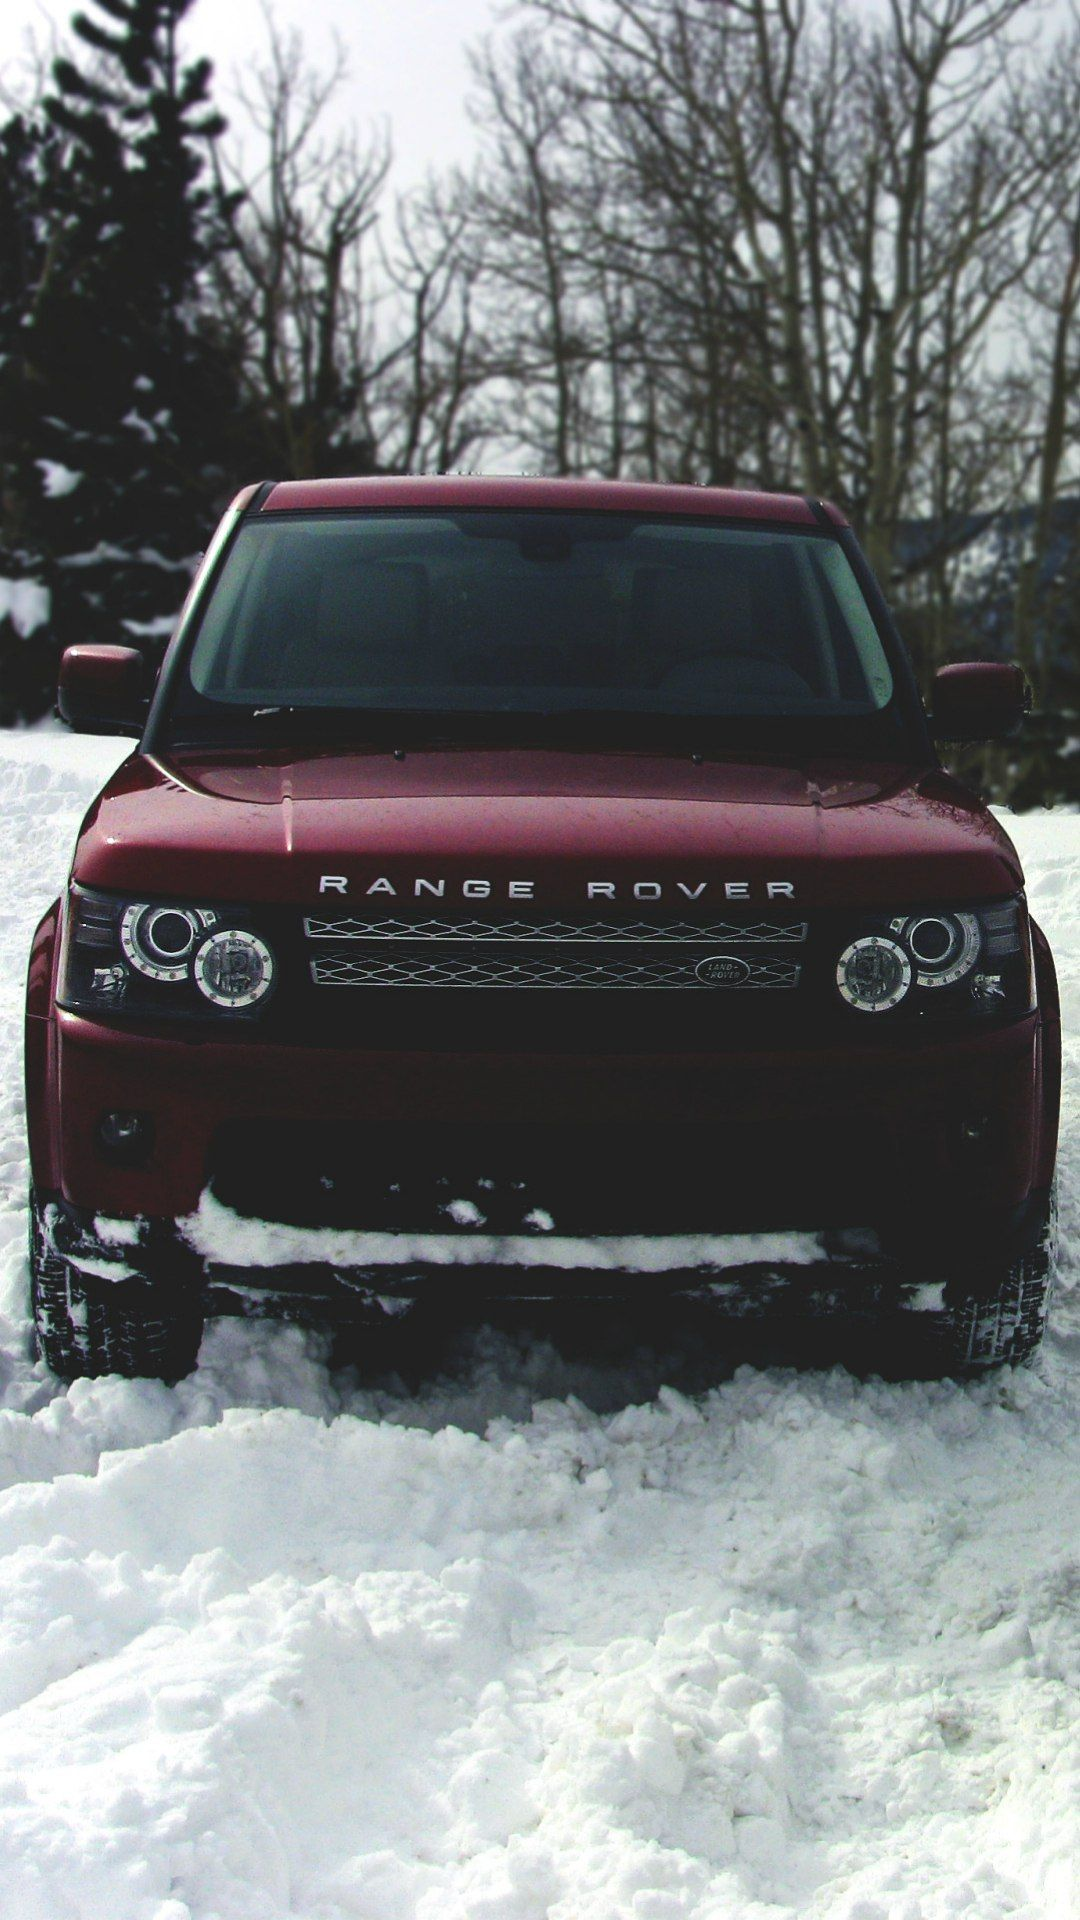 Range Rover Wallpaper For Mobile Hd Posted By Christopher Tremblay